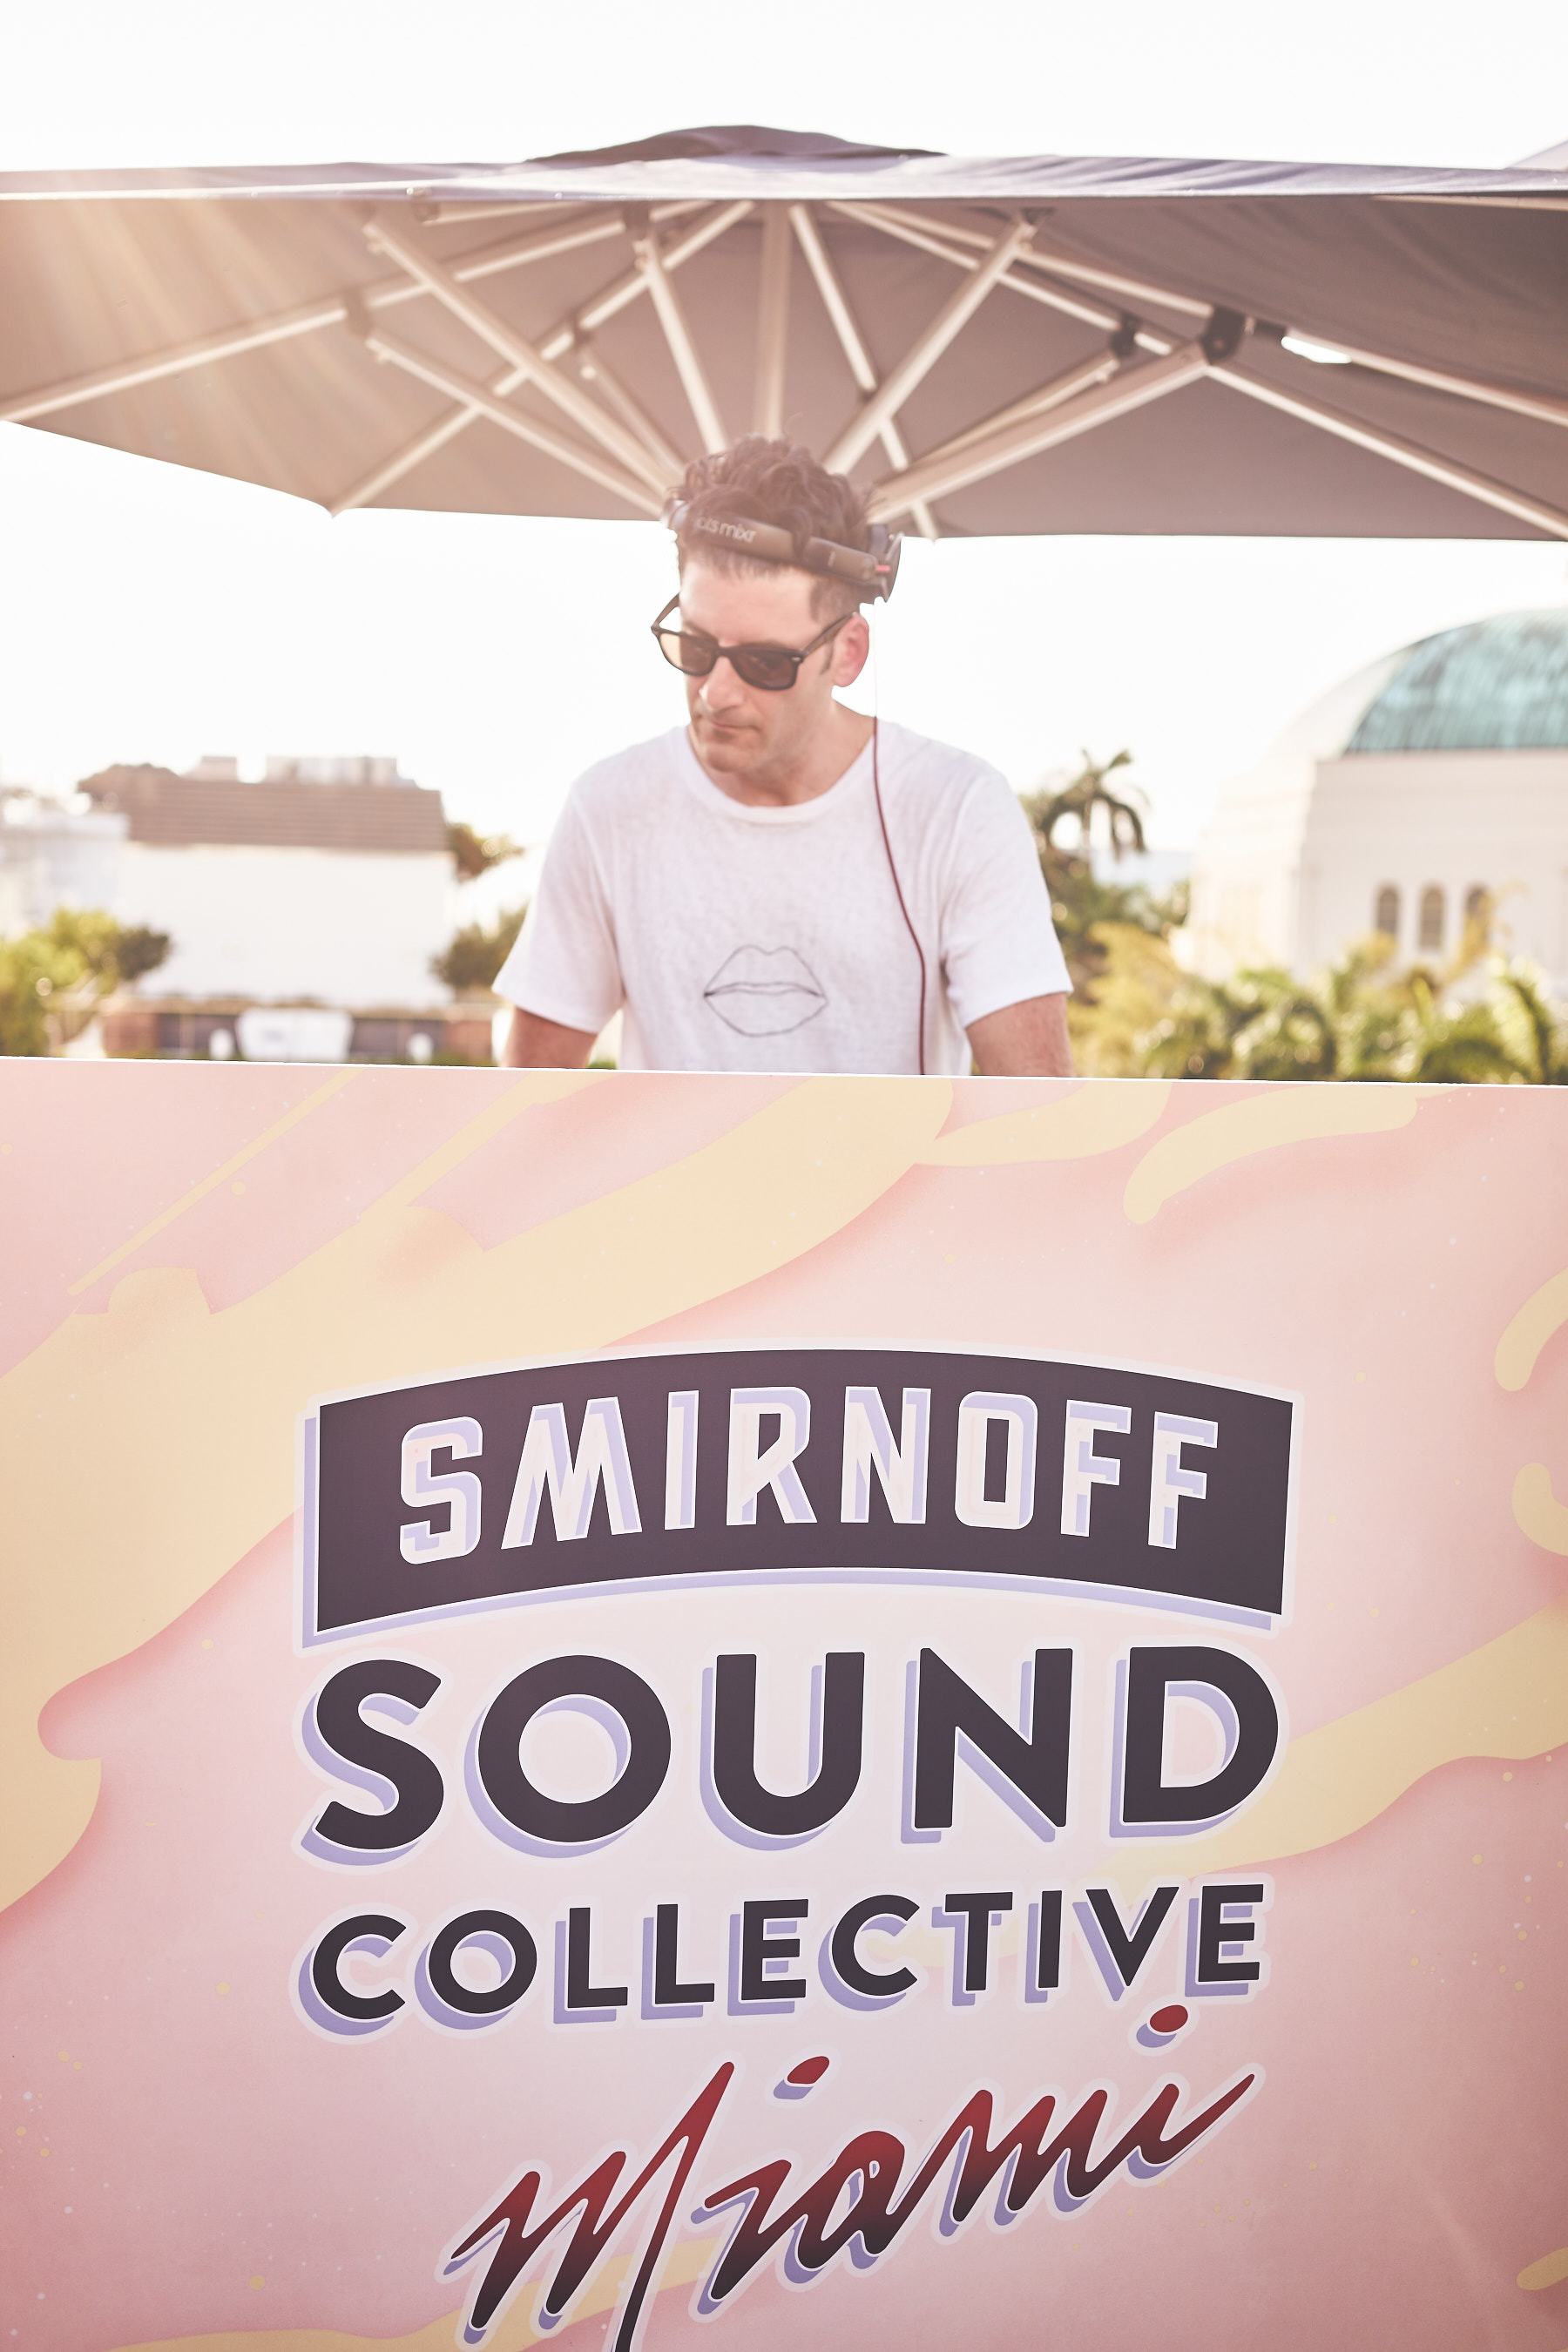 Smirnoff-sound-collective-miami-MMW-Music_Wordintown-Jayromero_photography_Dj_Destructo_Gary_Richards